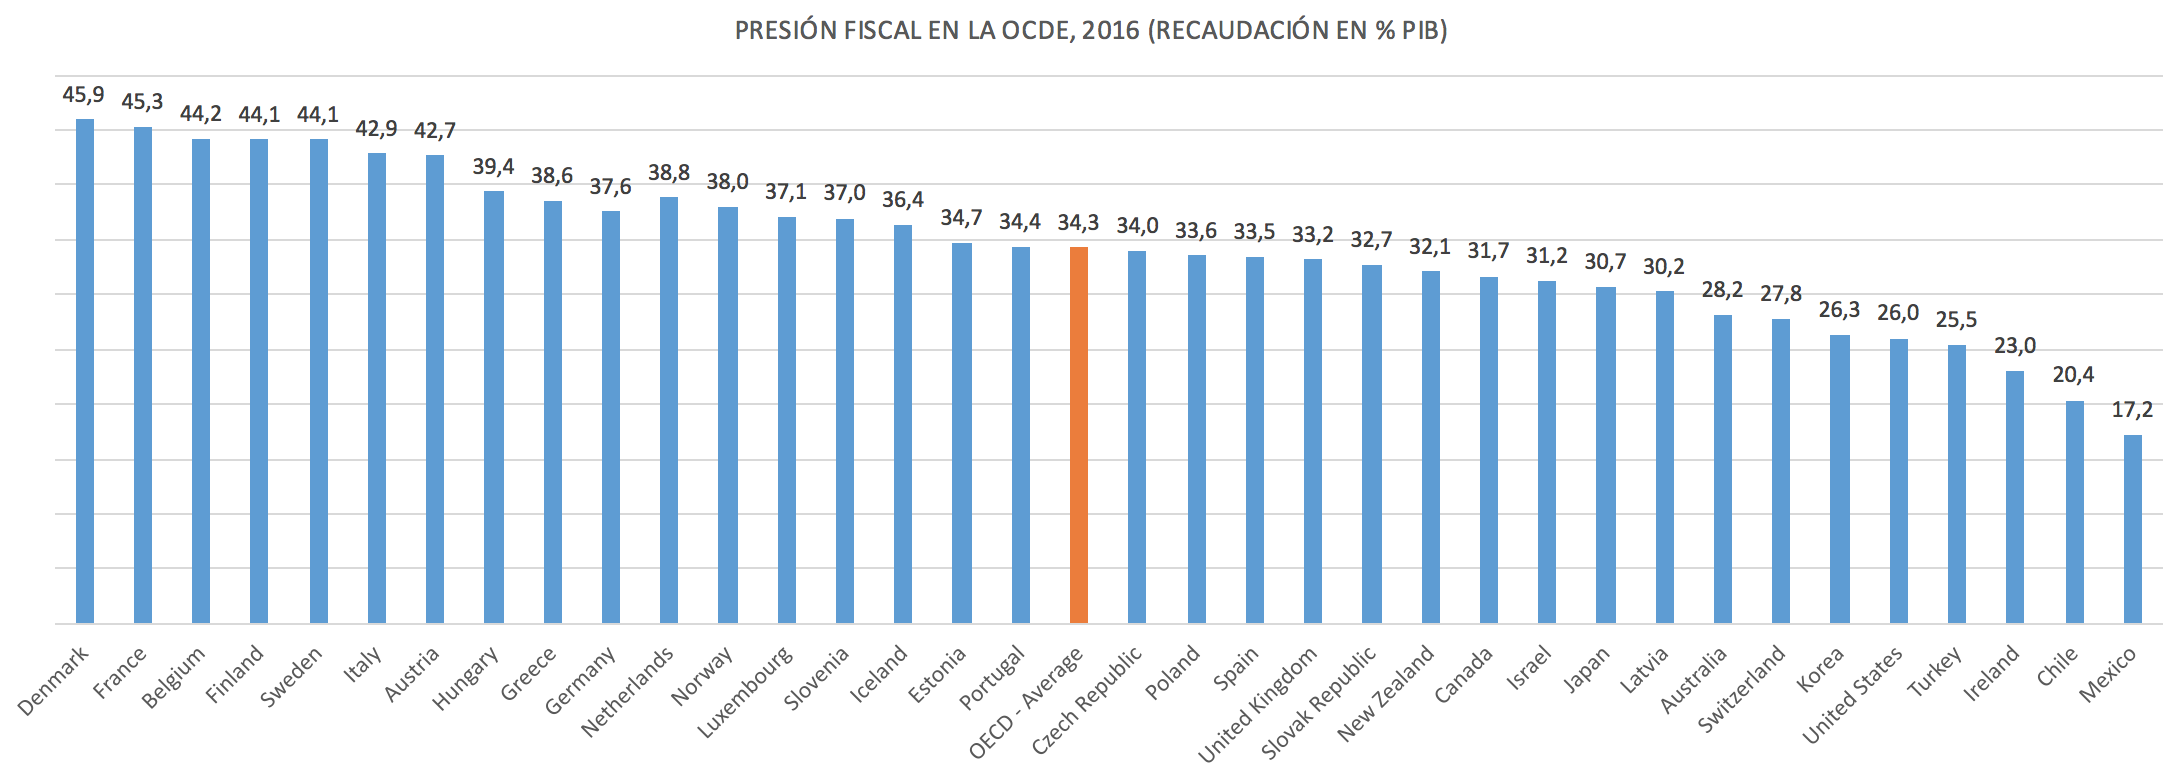 1-presion-fiscal-ocde.png